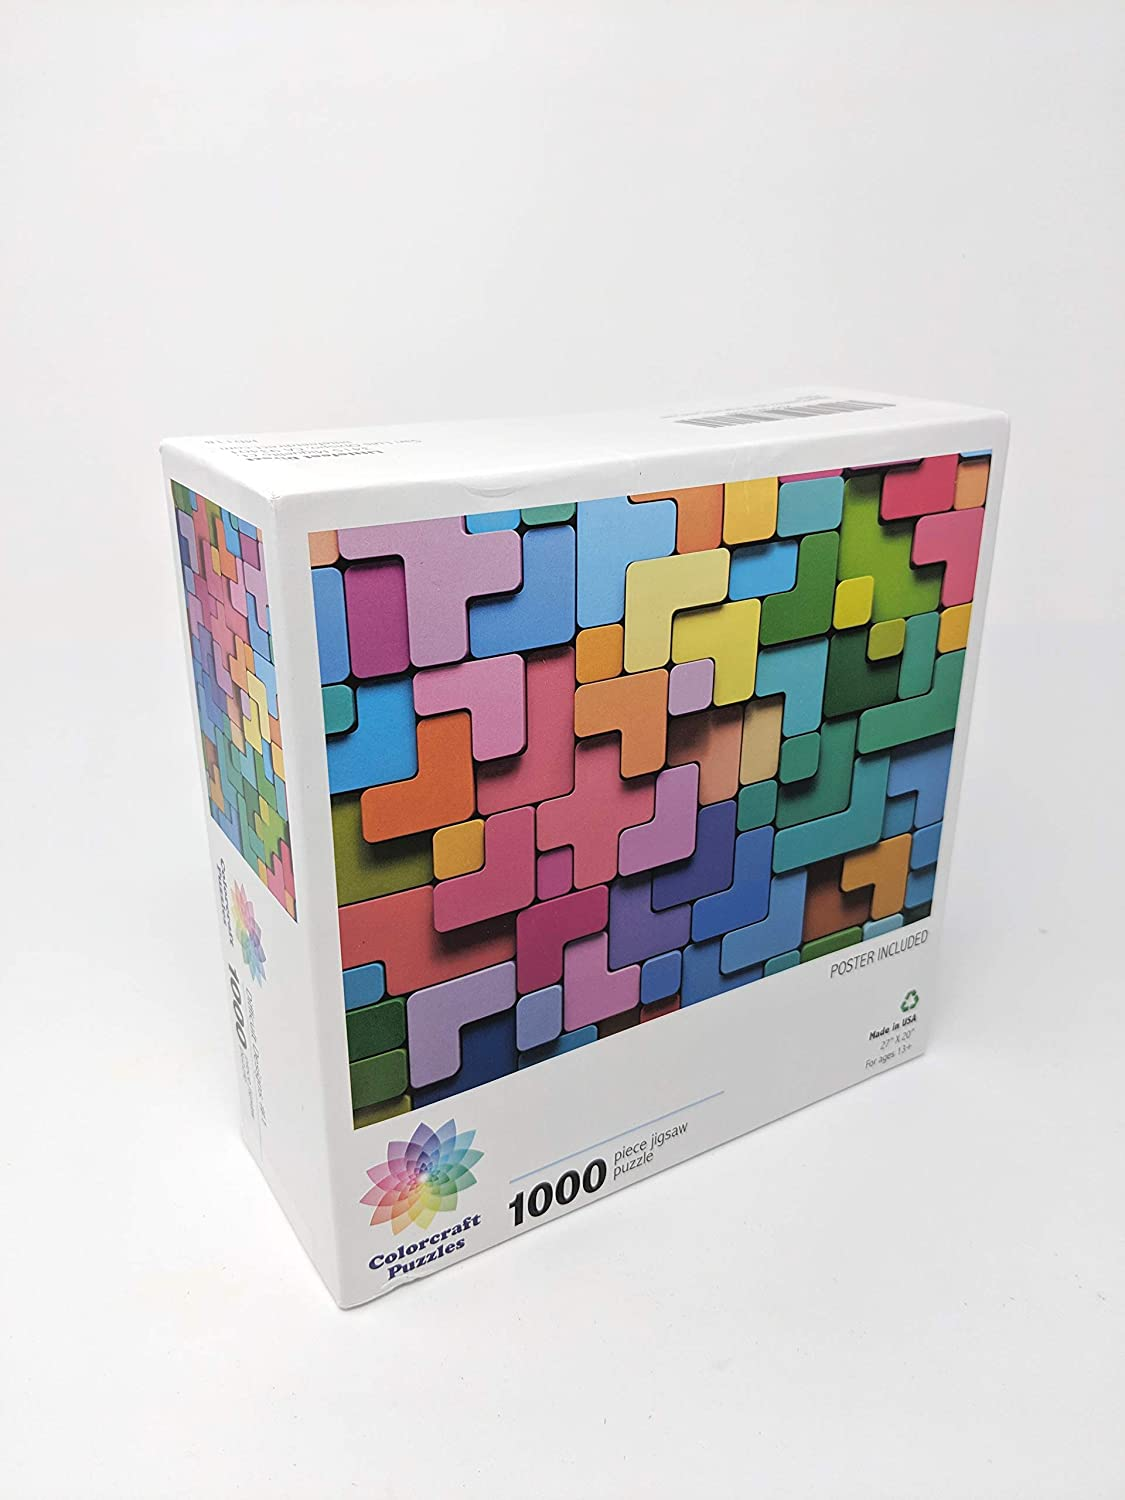 Difficult Designs #1-1000 Unique Pieces Jigsaw Puzzles for Adults Made in The USA by Color Craft Puzzles Challenge Any Puzzle Lover Littlefeet Direct